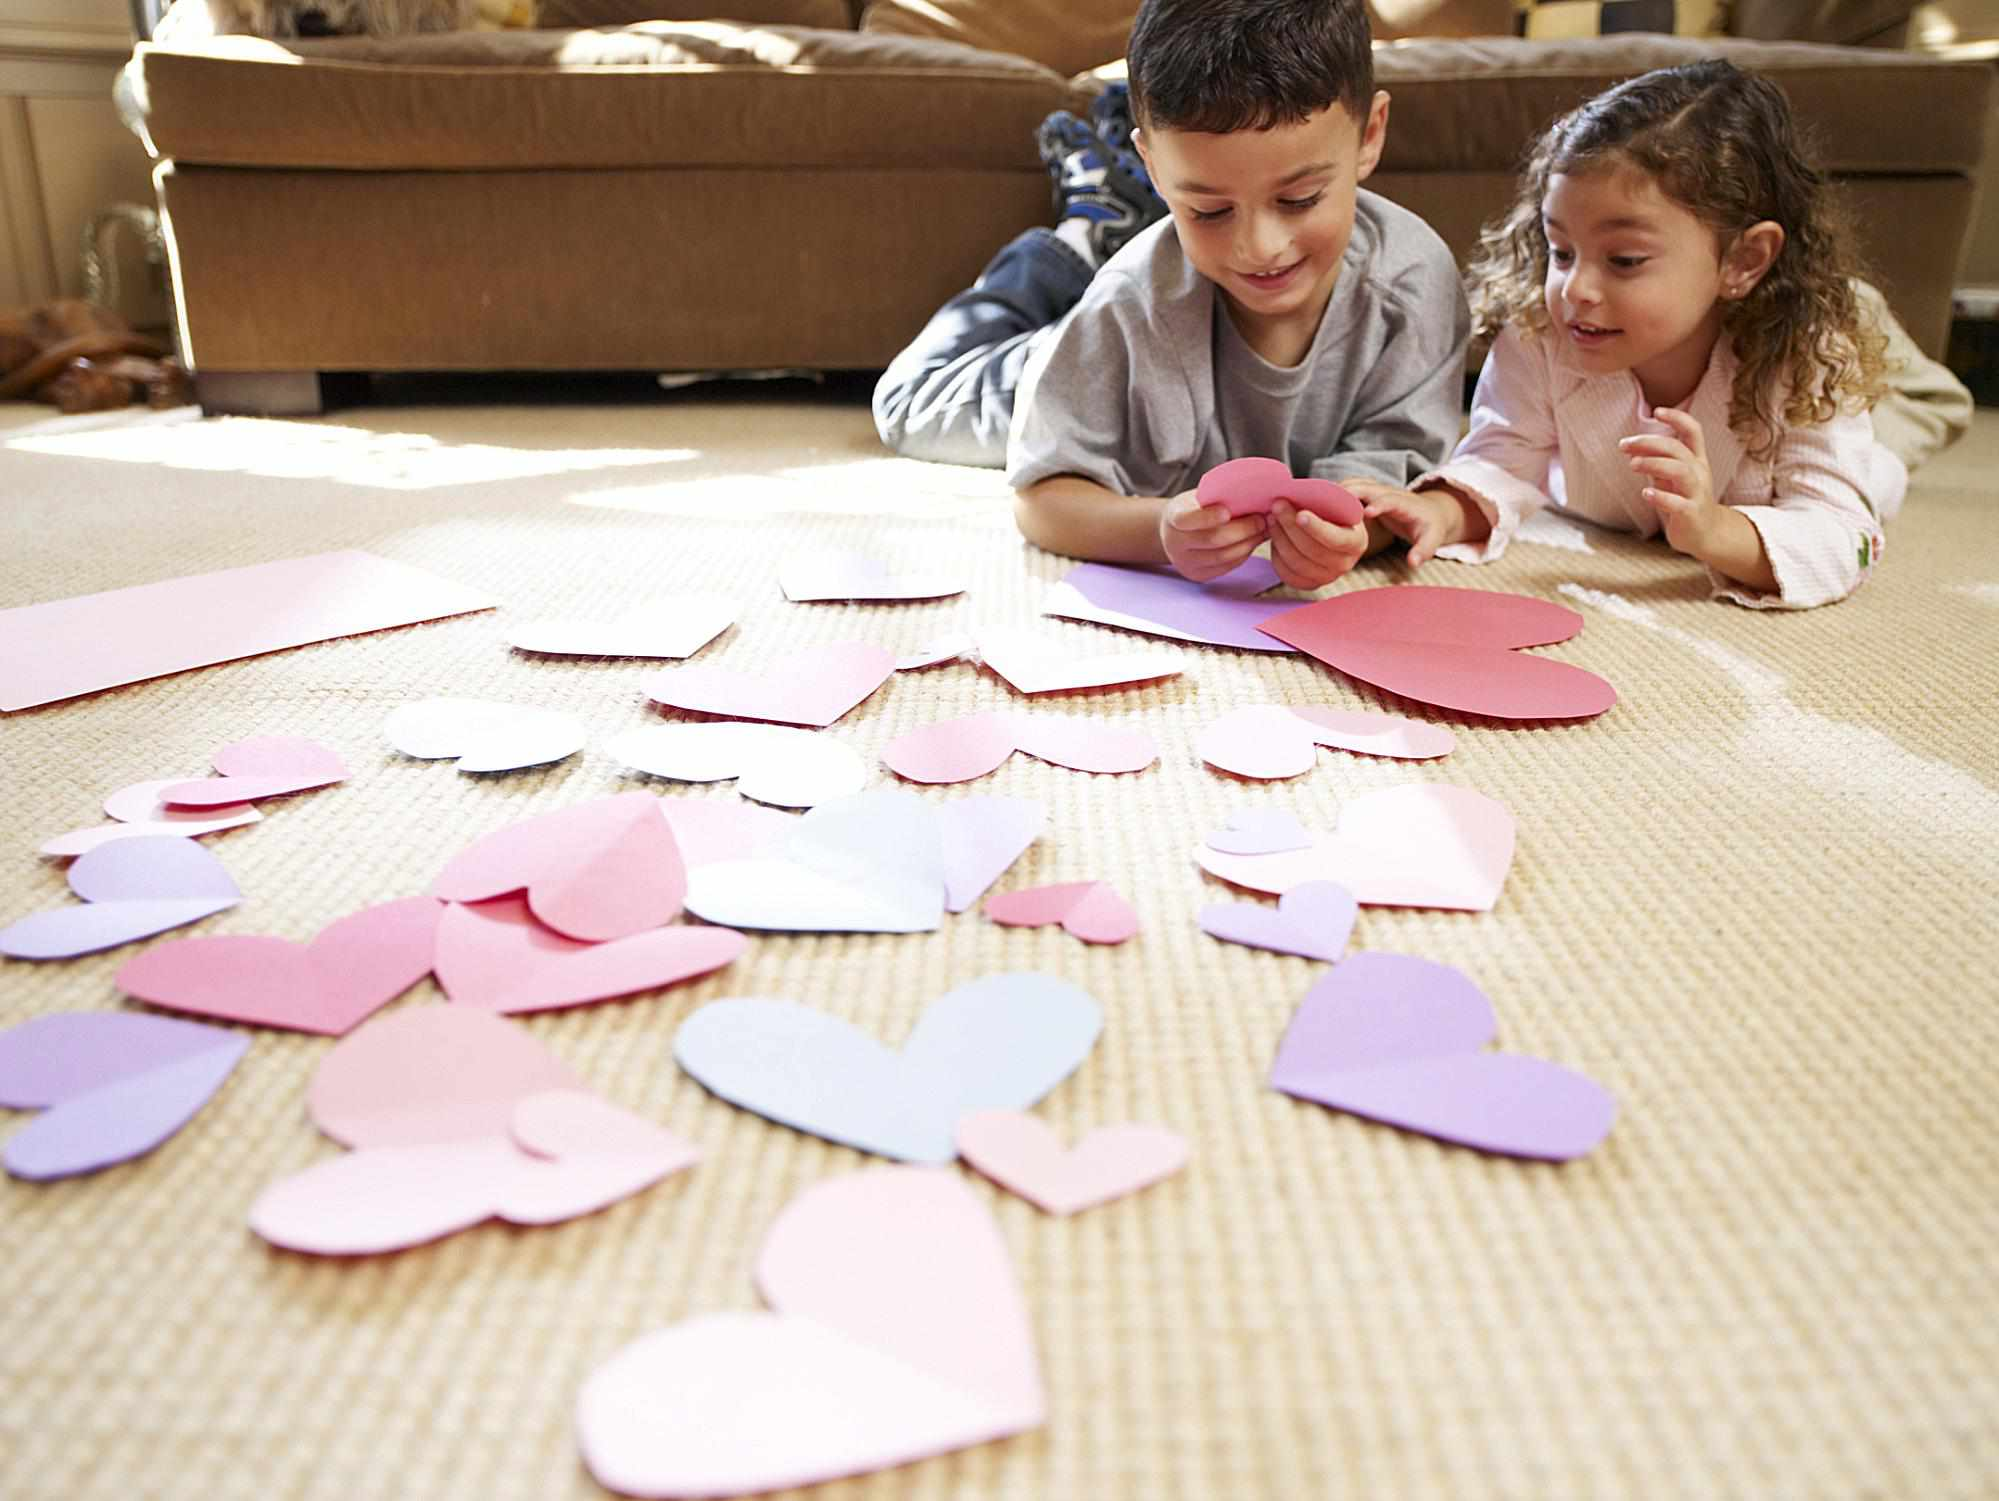 A boy and girl playing with paper hearts.